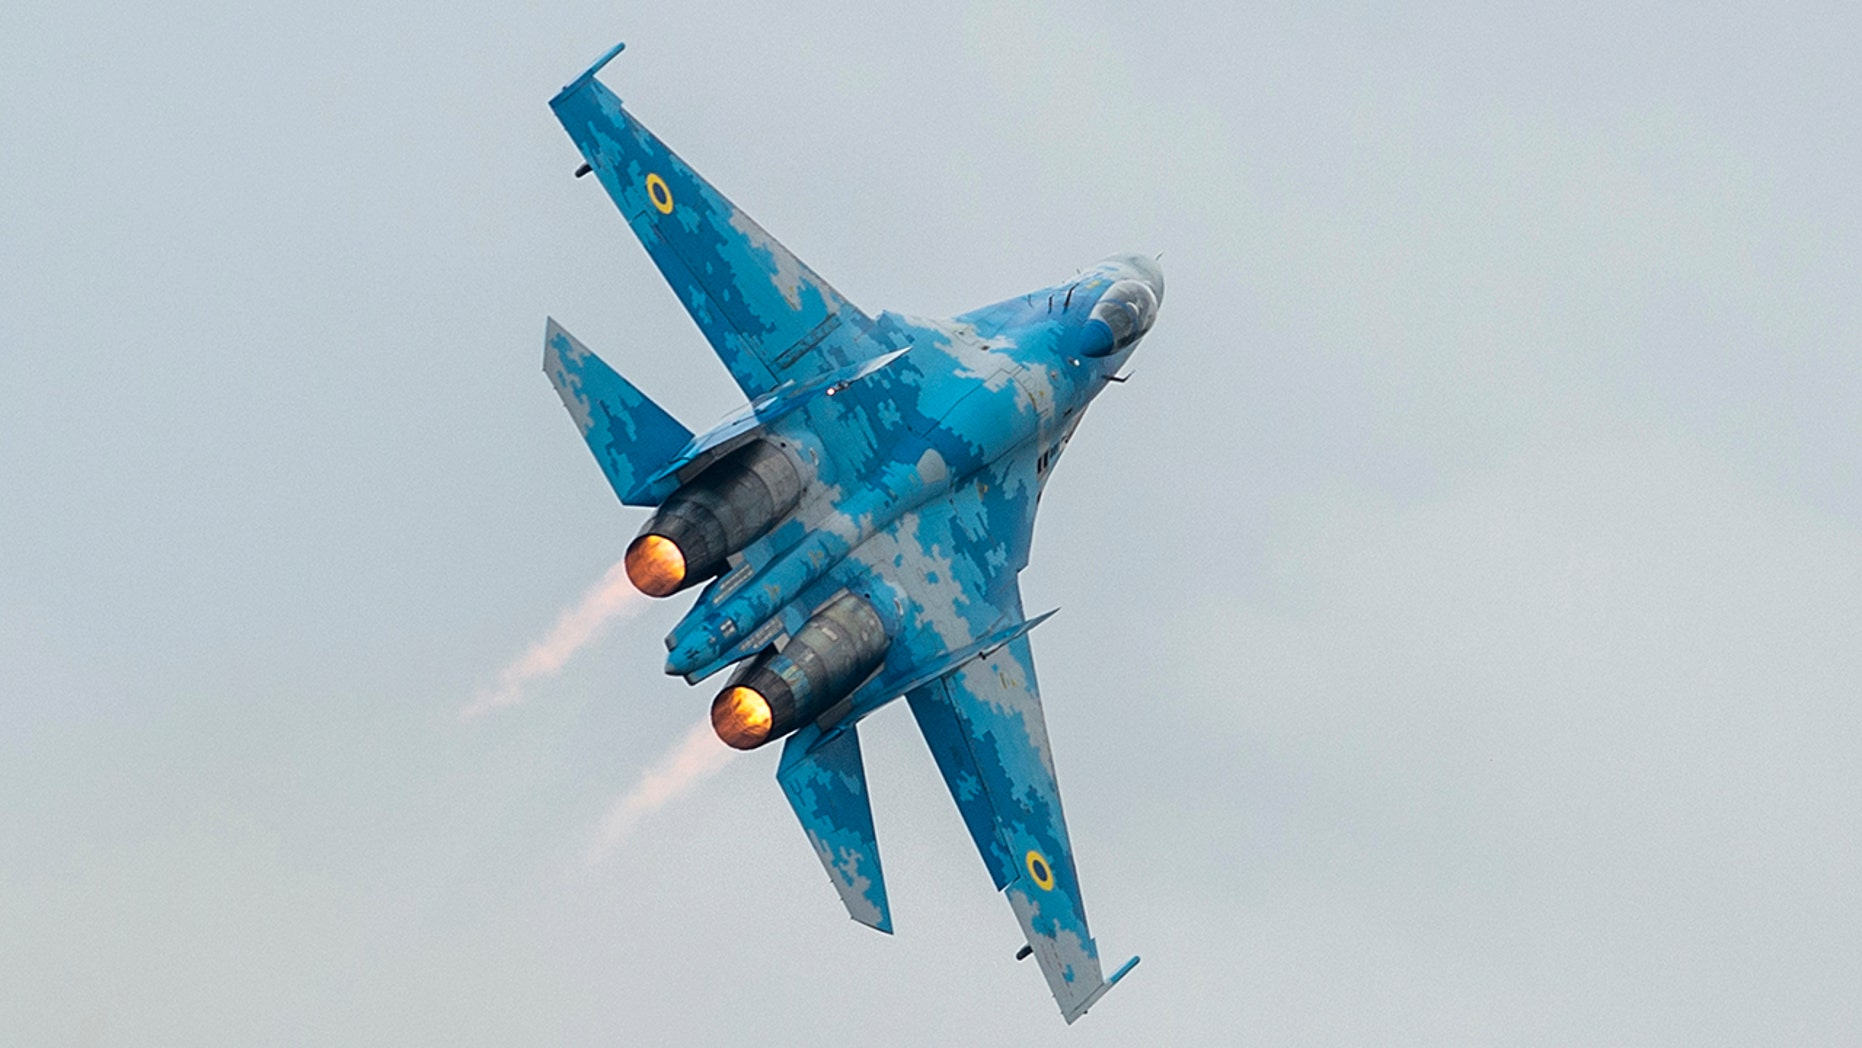 A Ukrainian Sukhoi Su-27 fighter jet is seen during an event last month. On Tuesday an American pilot on board a similar aircraft was killed when it crashed during a military training in Ukraine